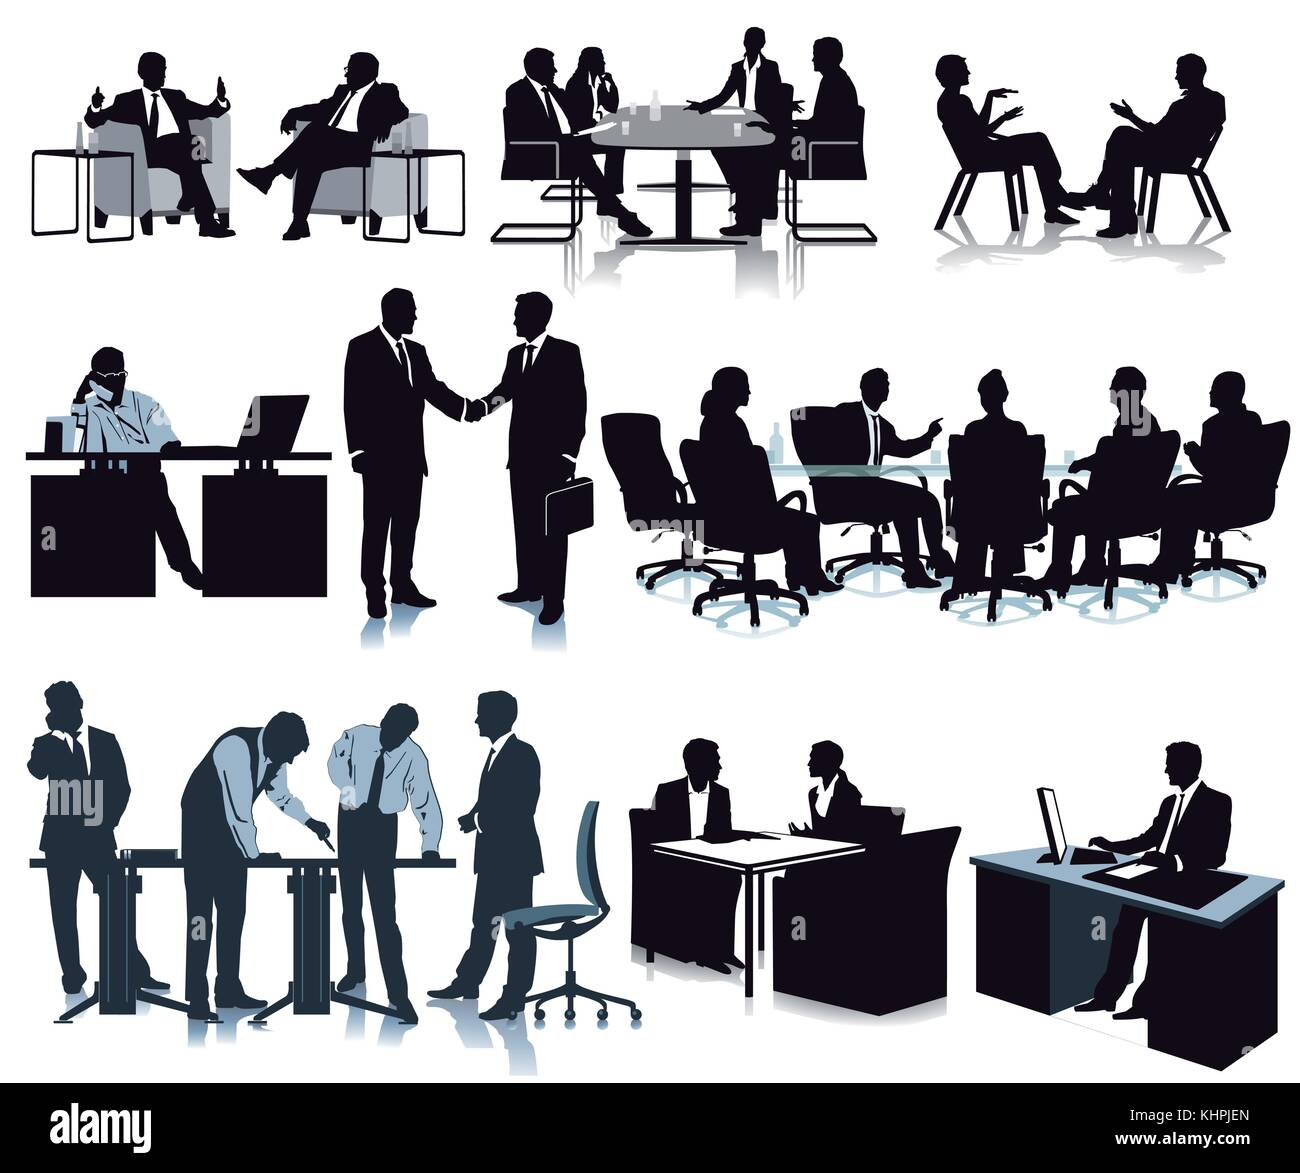 Meeting in the office, conference, discussion, illustration - Stock Vector